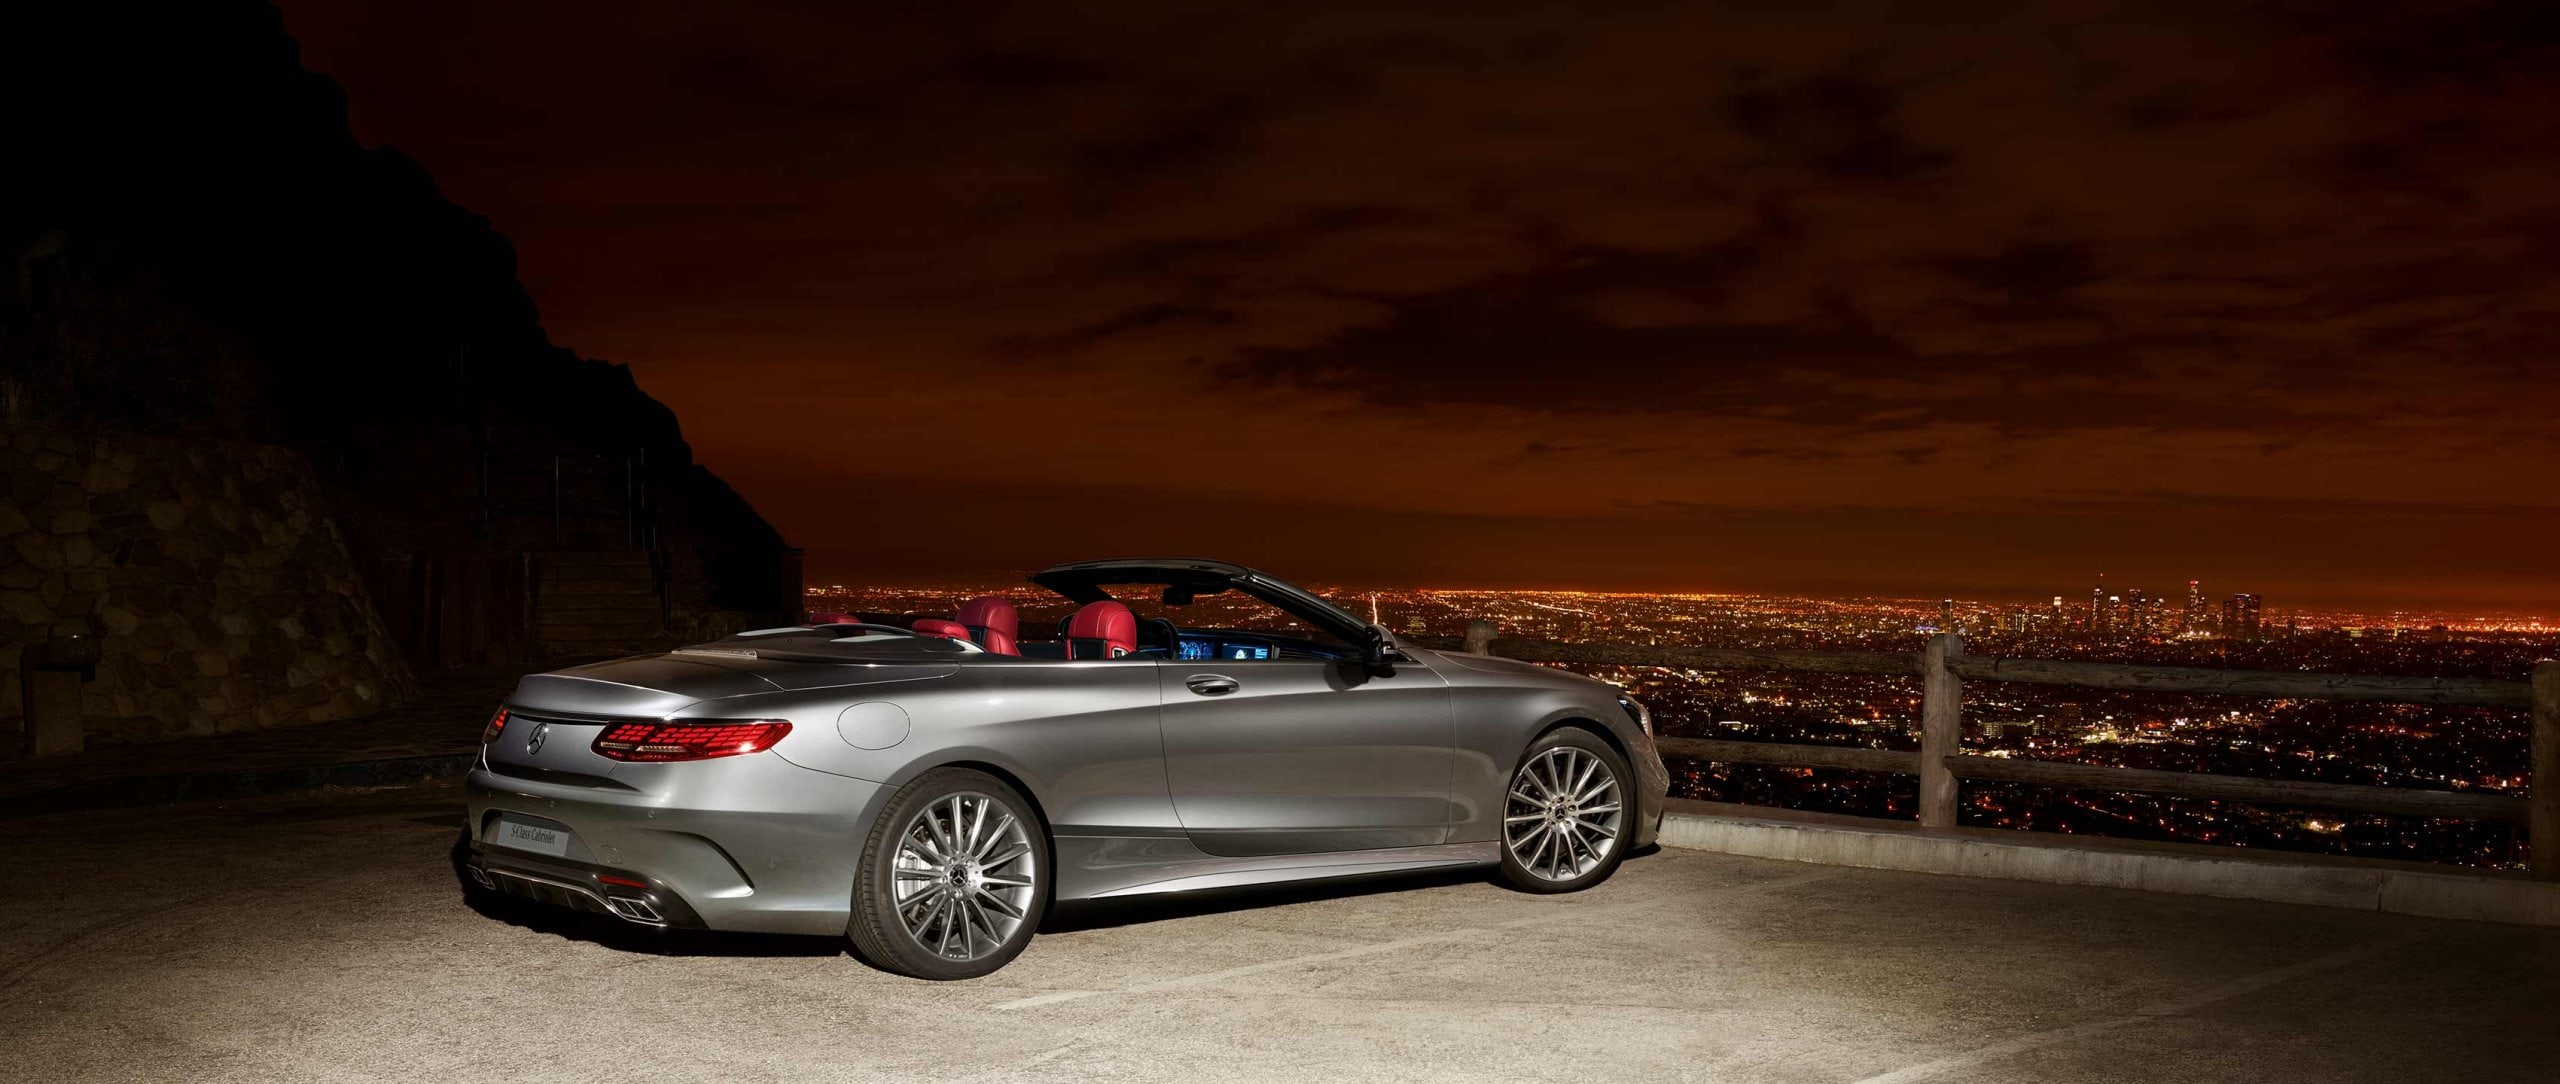 Mercedes-Benz: S-Class facelift model series 217 – The new S 560 Coupé (C 217) and S 560 Cabriolet (A 217).